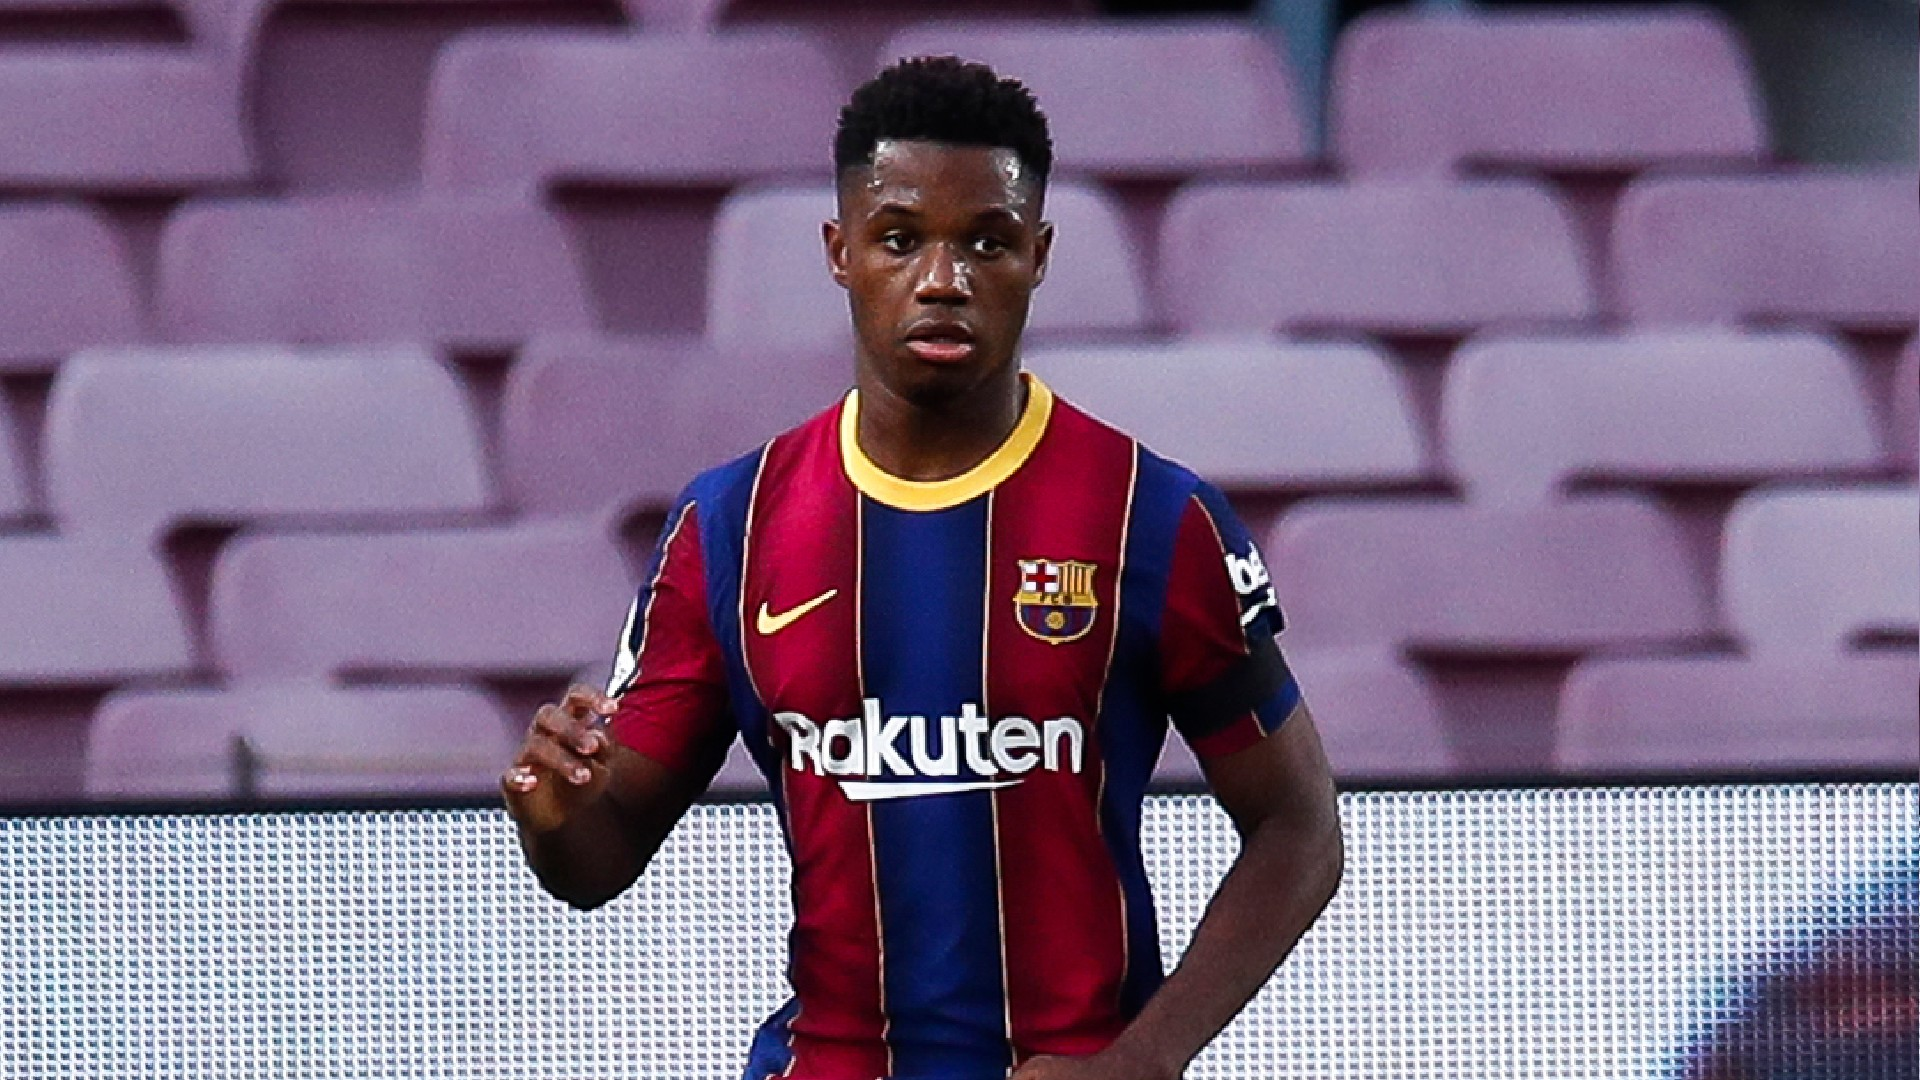 Barcelona confirm injured youngster Fati to undergo another operation